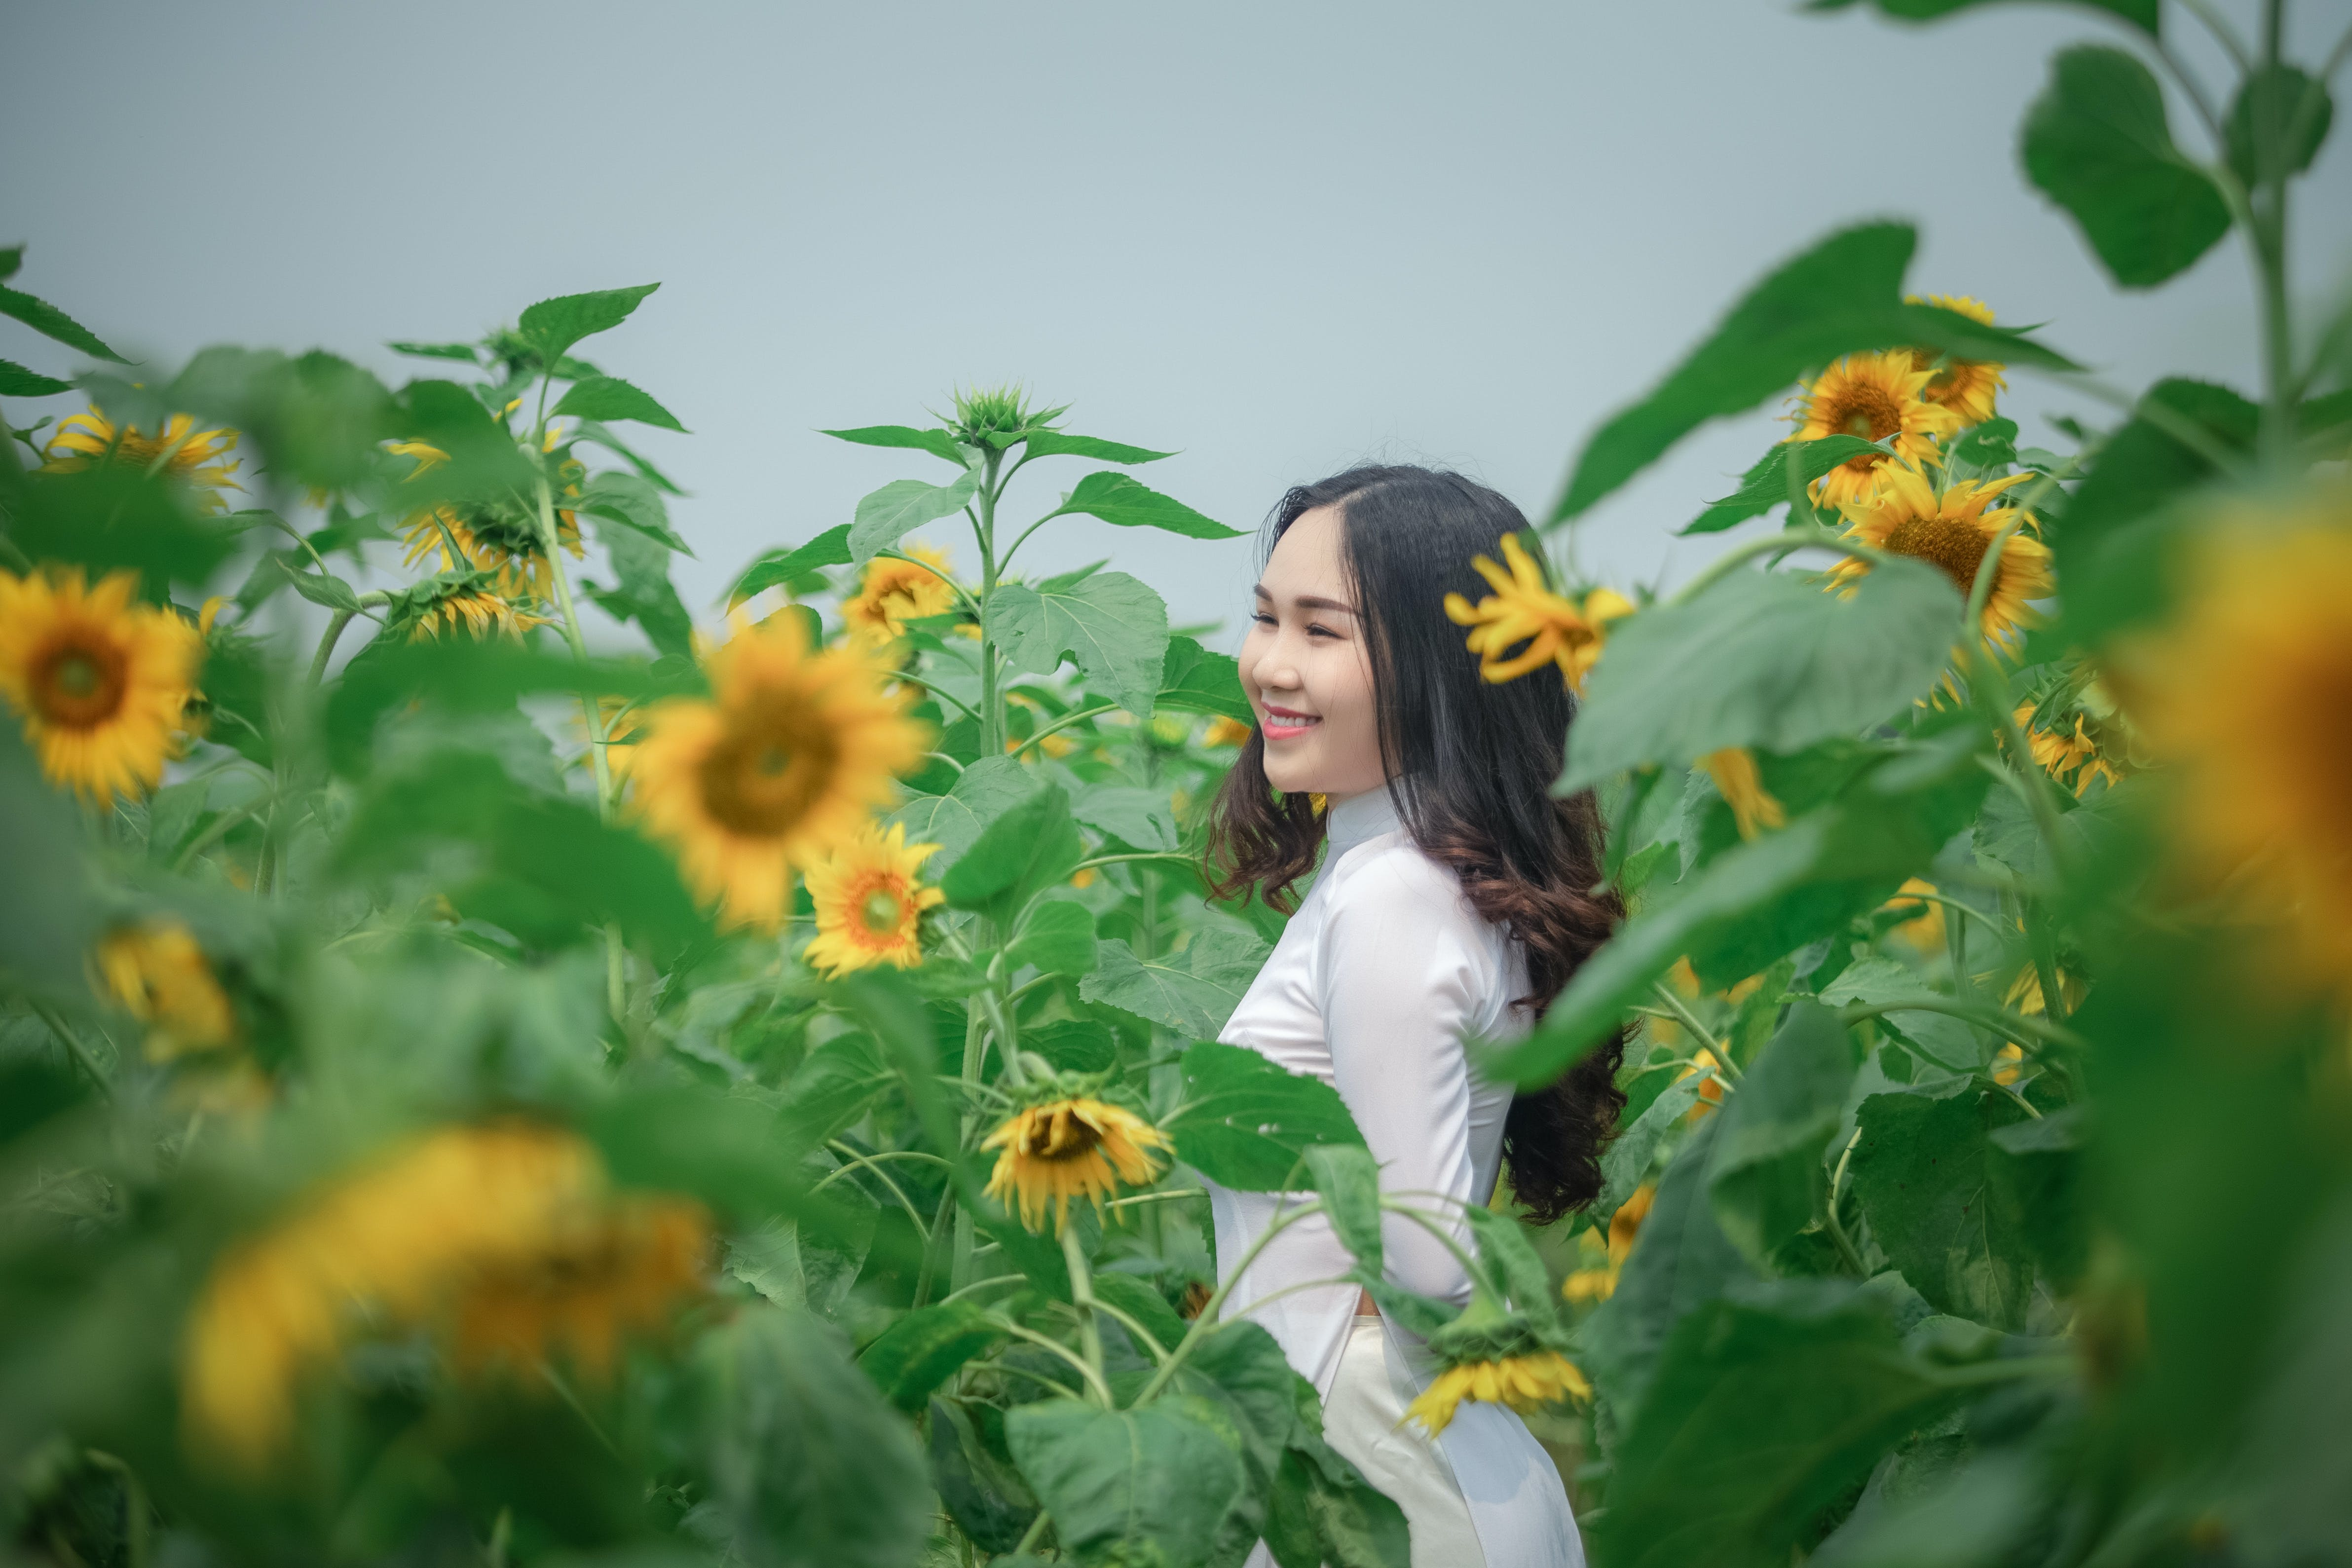 Photo of Smiling Woman in White Outfit Standing in the Middle of a Sunflower Field